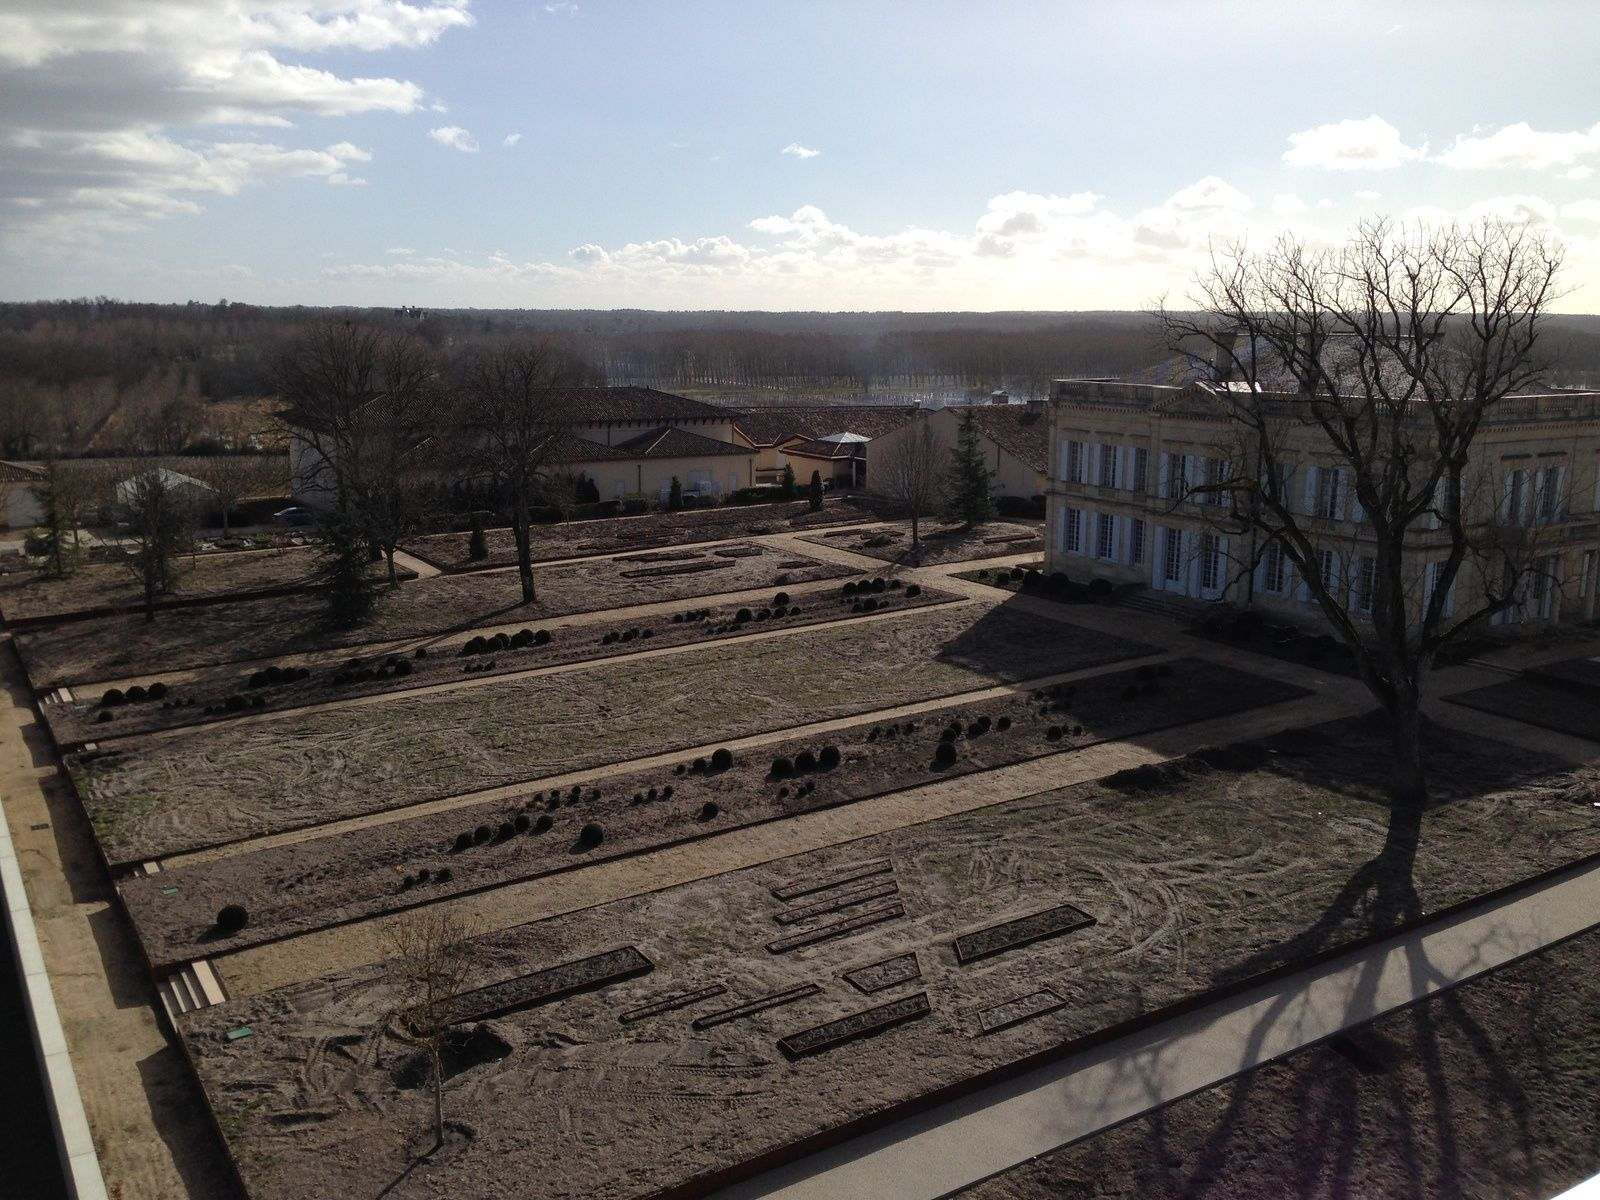 The garden under construction in February 2015